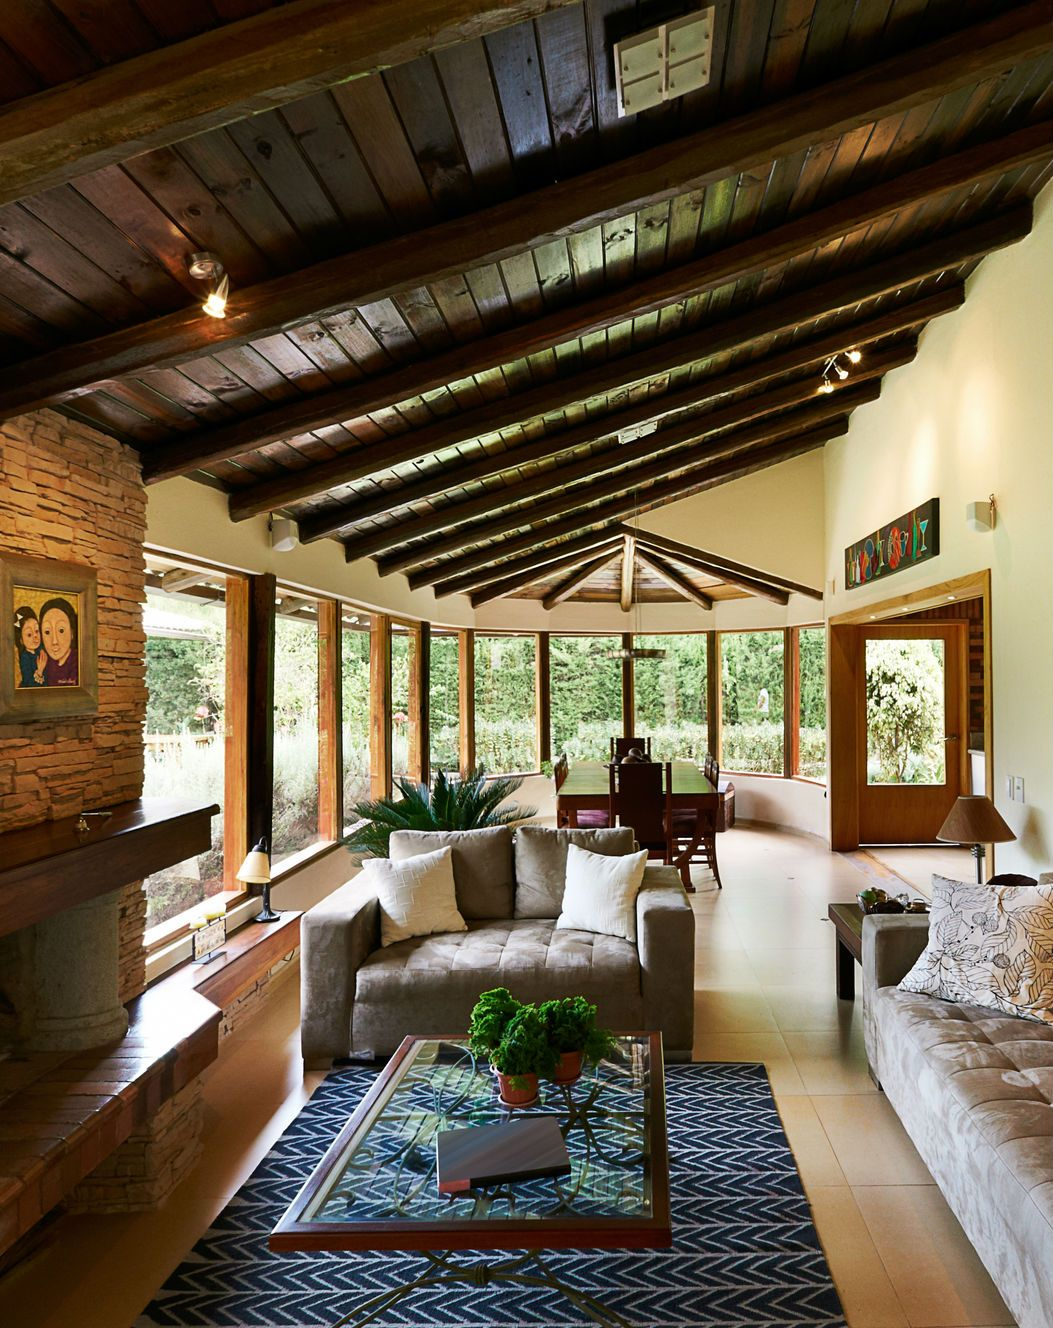 Dream living room design in rustic style with exposed ceiling beams